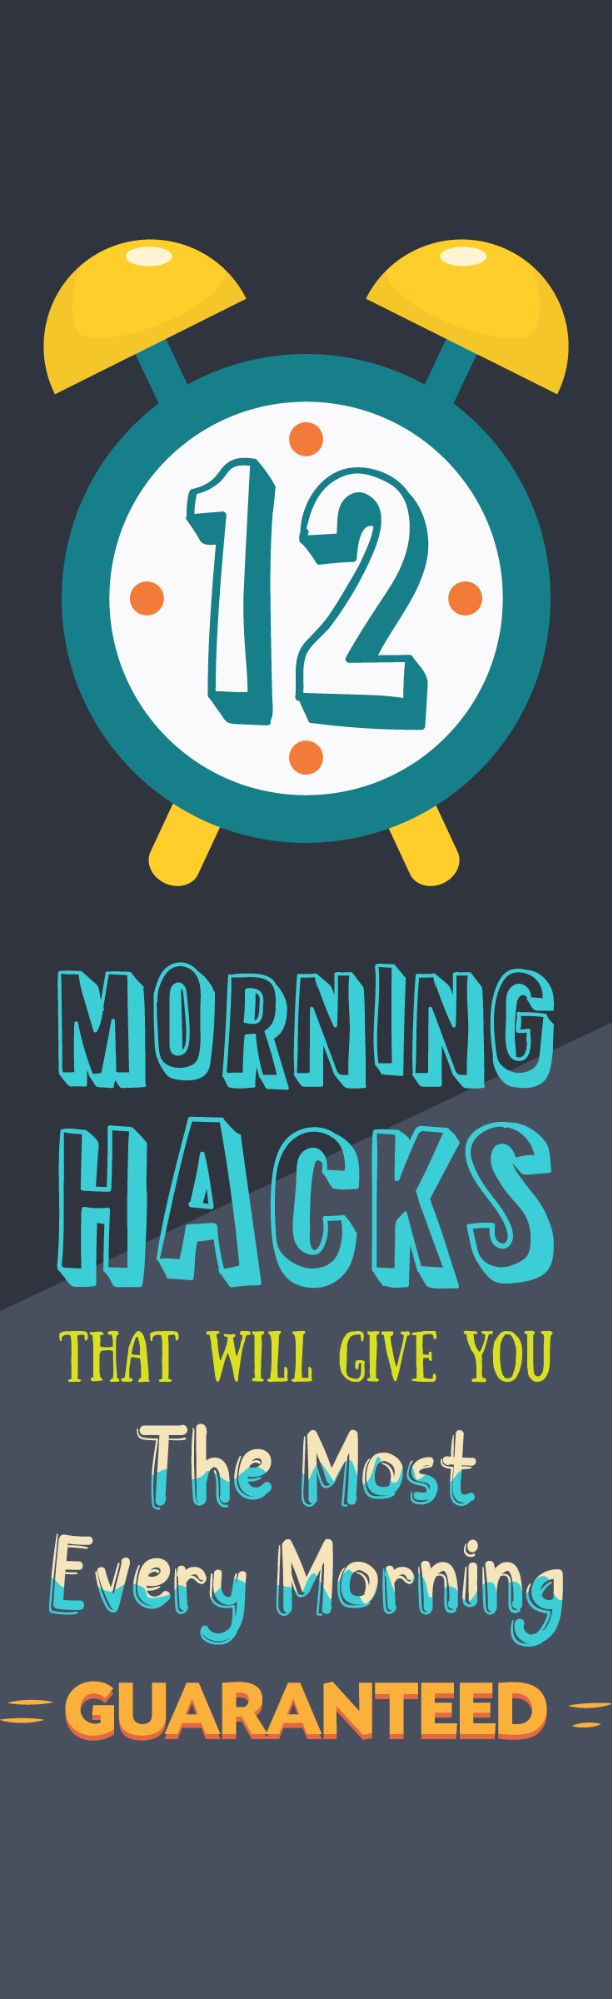 12 Morning Hacks That Will Give You The Most Energy Every Morning!